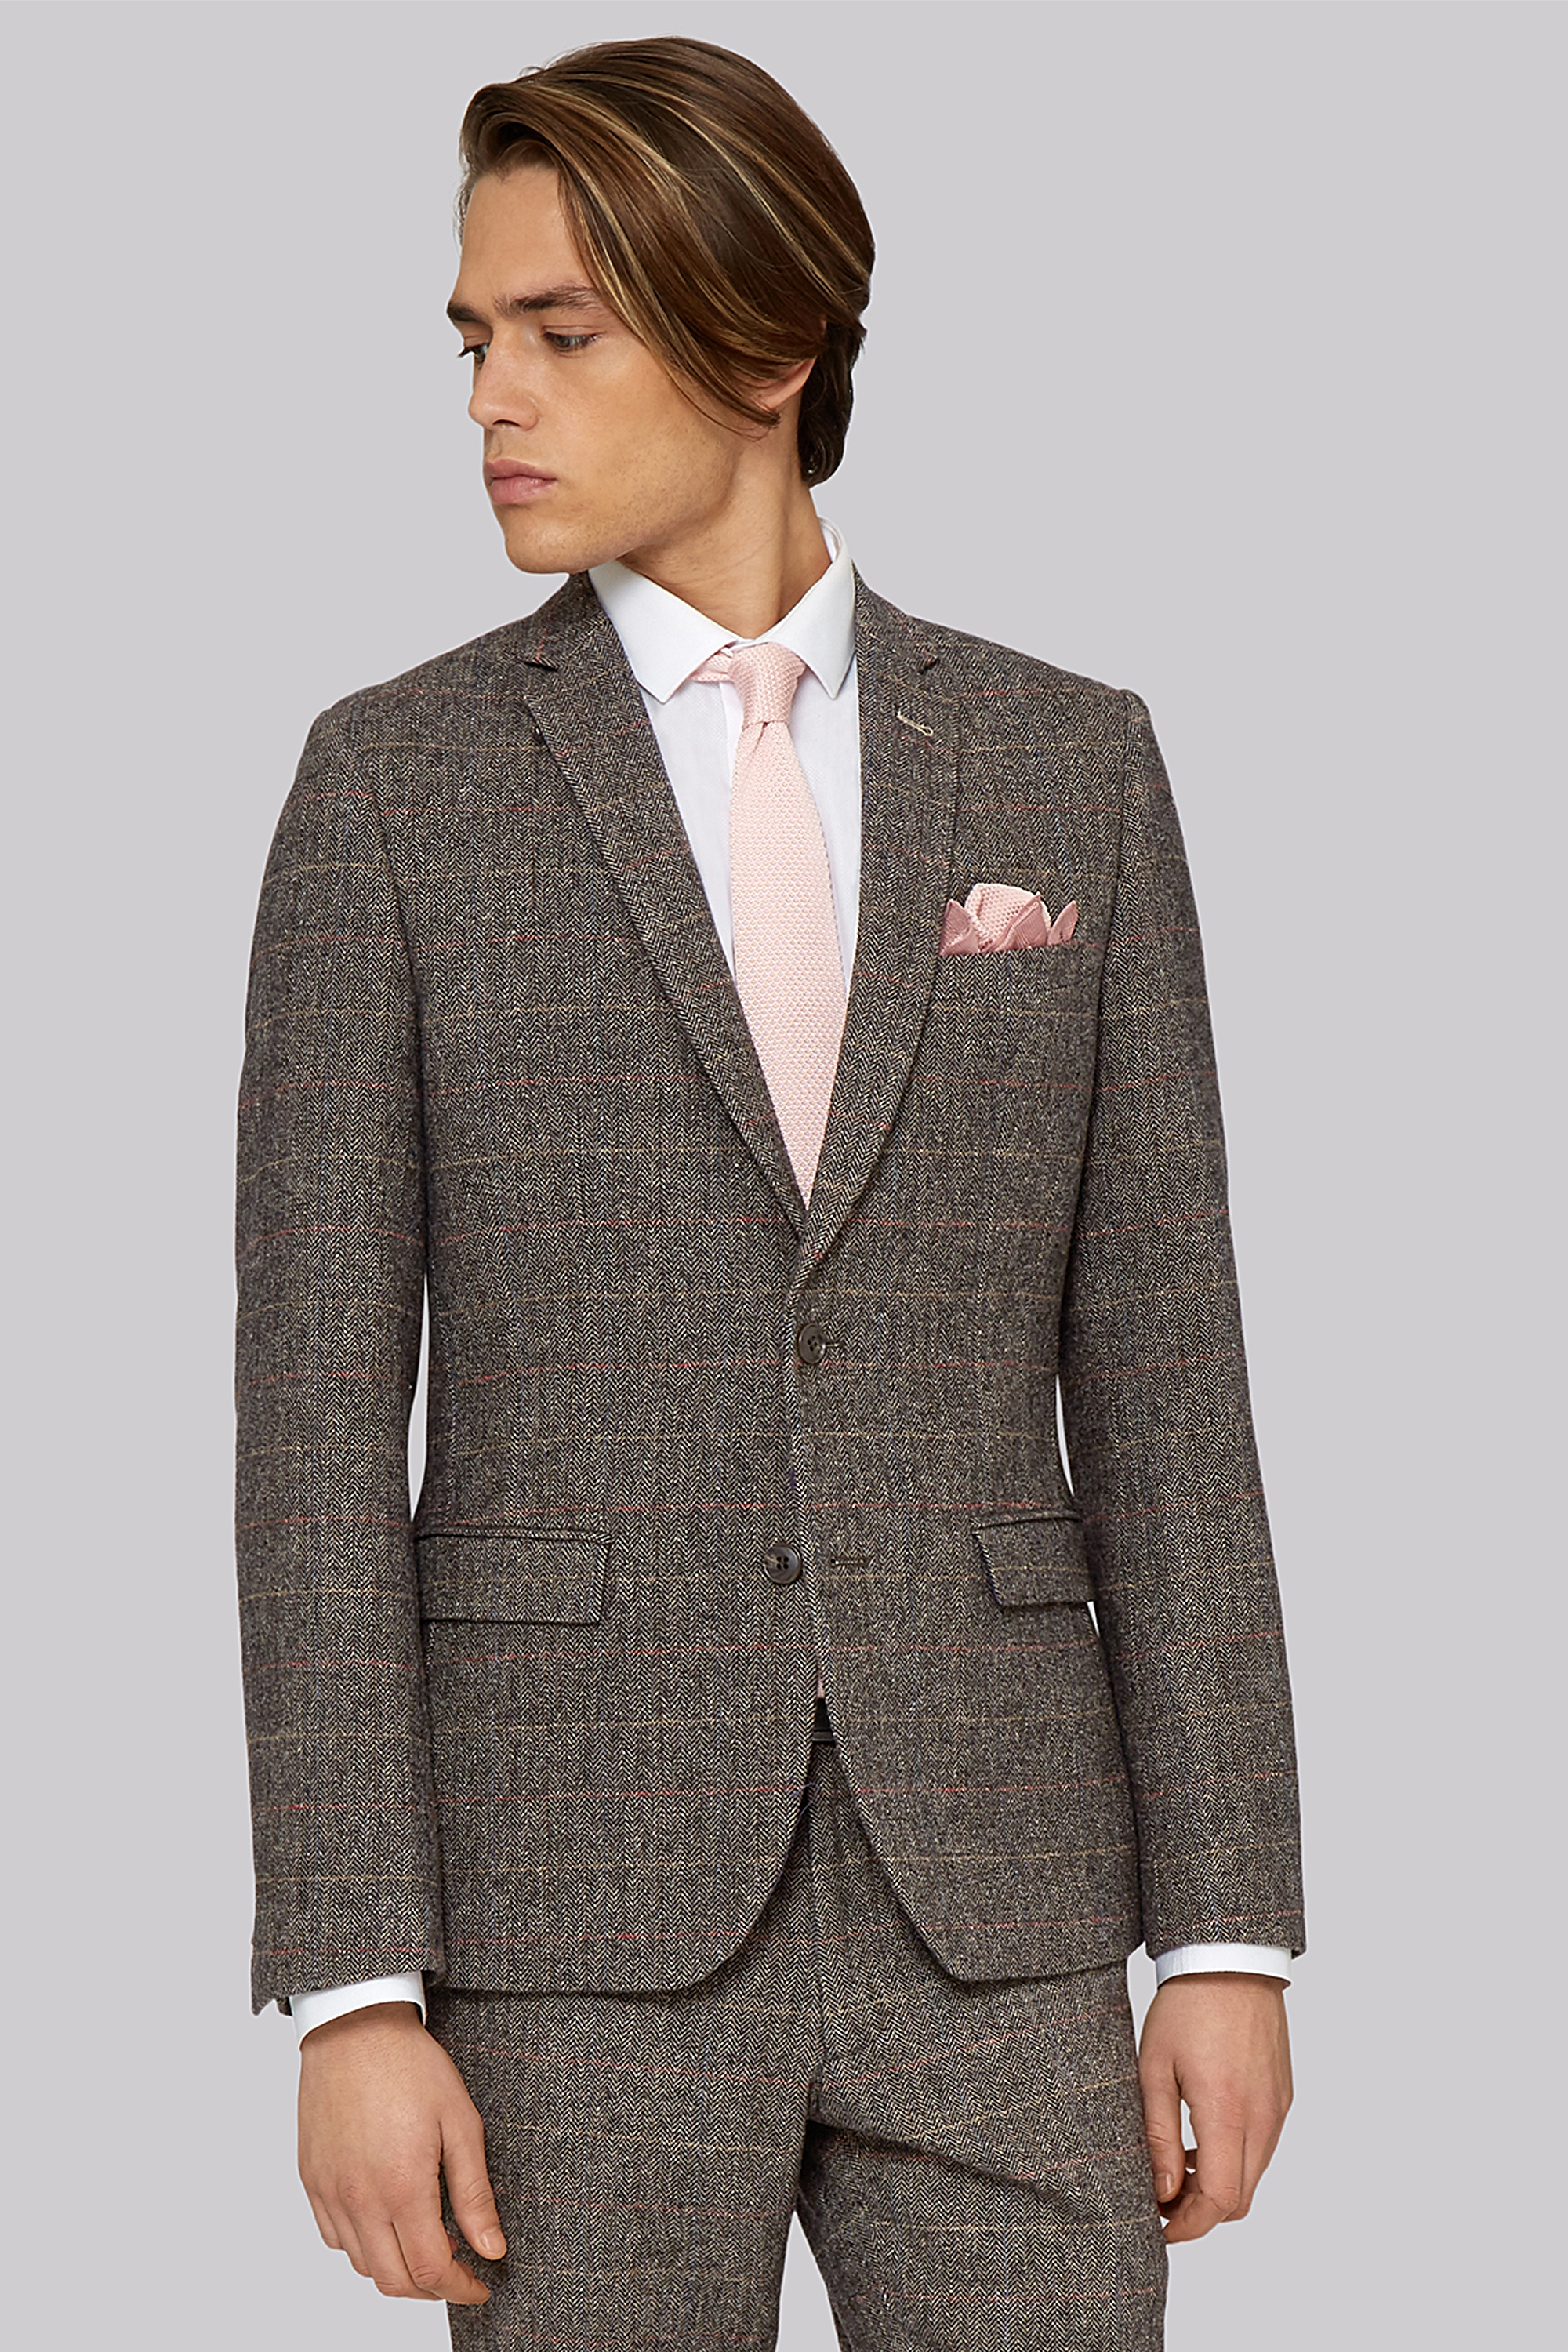 London Slim Fit Light Brown Check Jacket